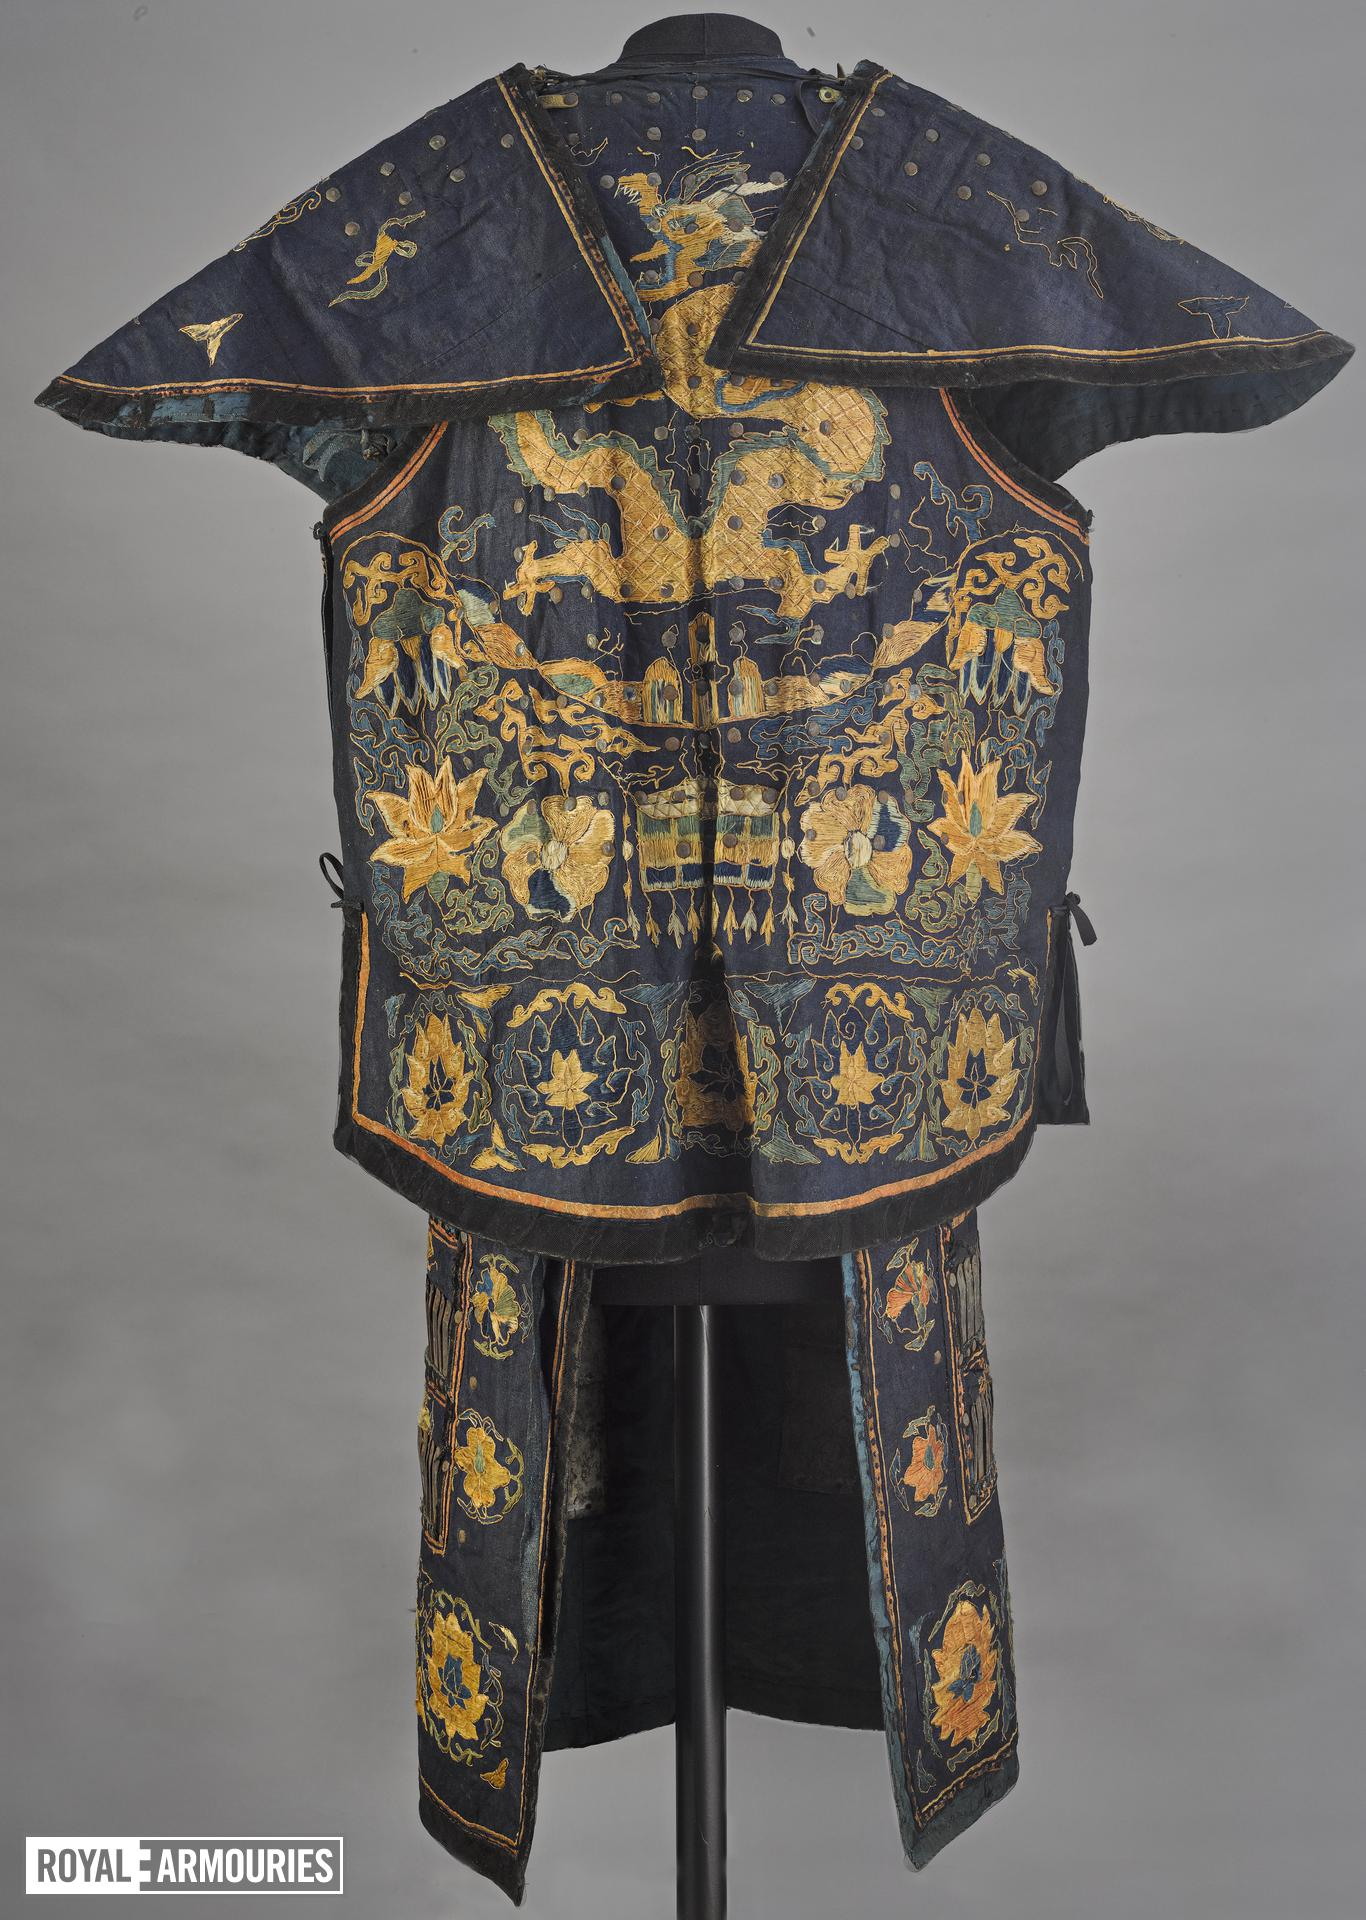 Armour (ding jia), China, 18th century